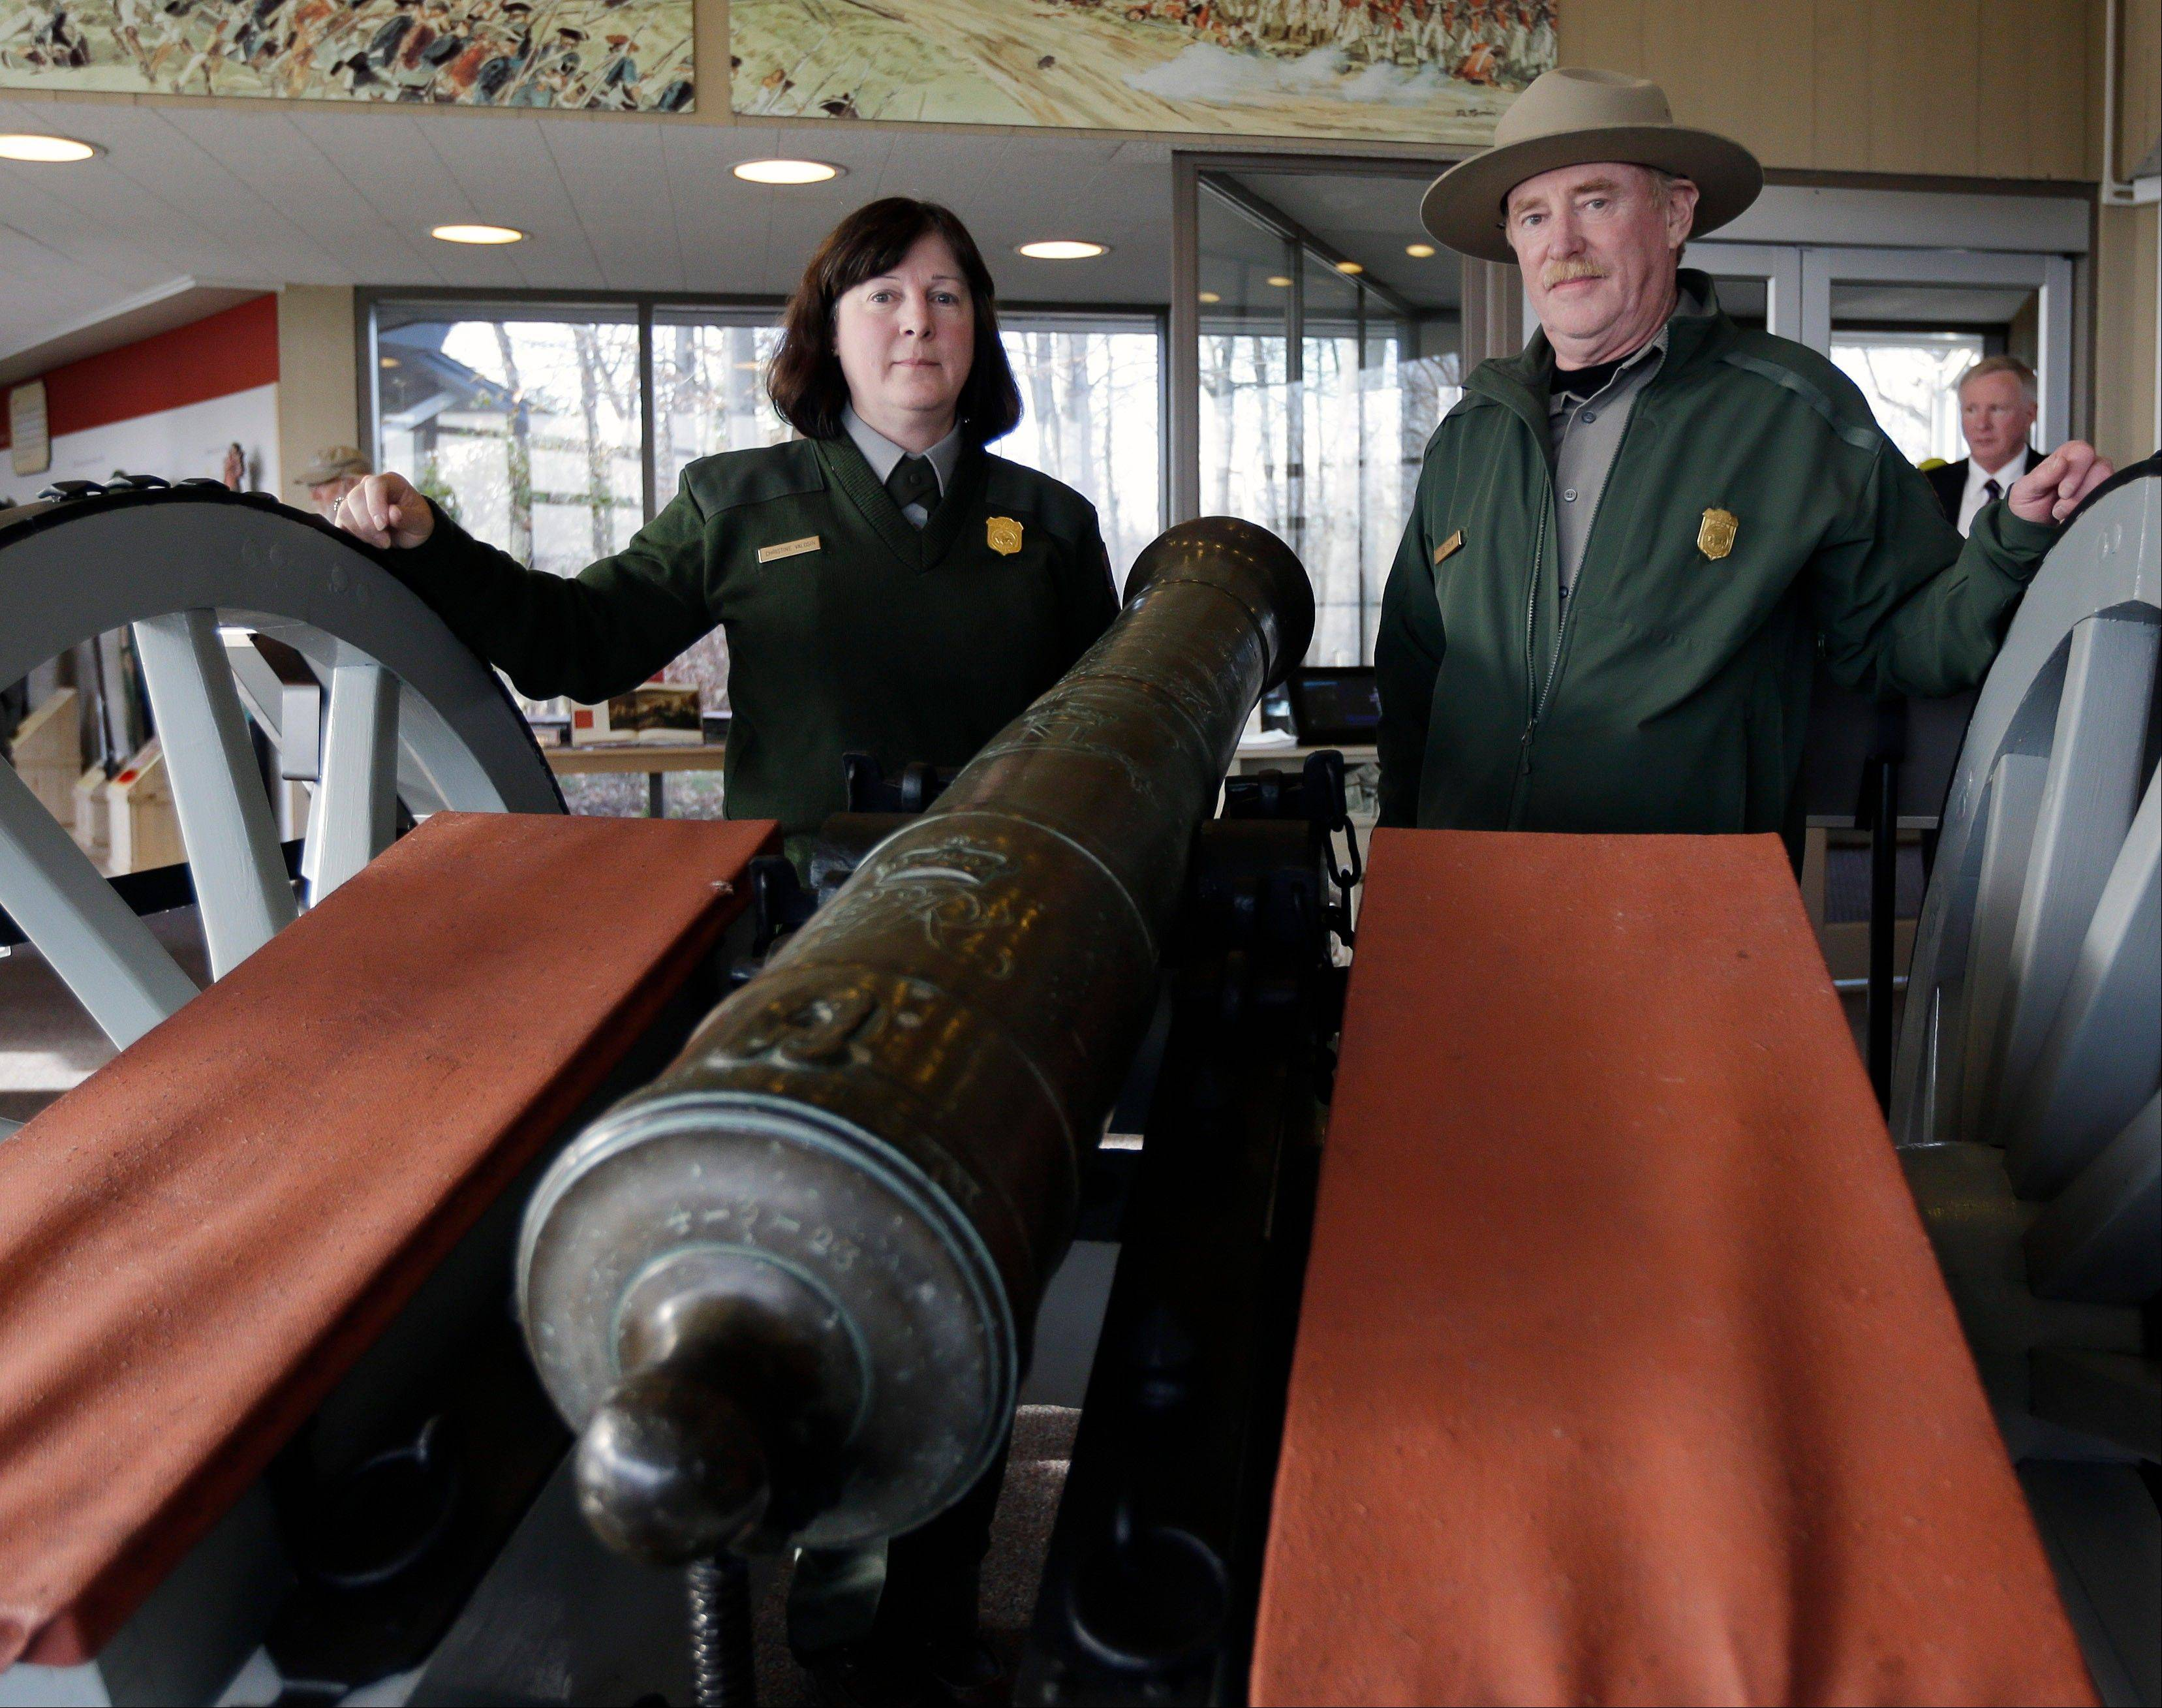 Saratoga National Historical Park Curator Christine Valosin, left, and superintendent Joe Finan pose with the Revolutionary War cannon after the ceremony. Officials at Saratoga say the rare Revolutionary War cannon was tracked down to Alabama's Tuscaloosa Museum of Art and recently delivered to the park, located 20 miles north of Albany.